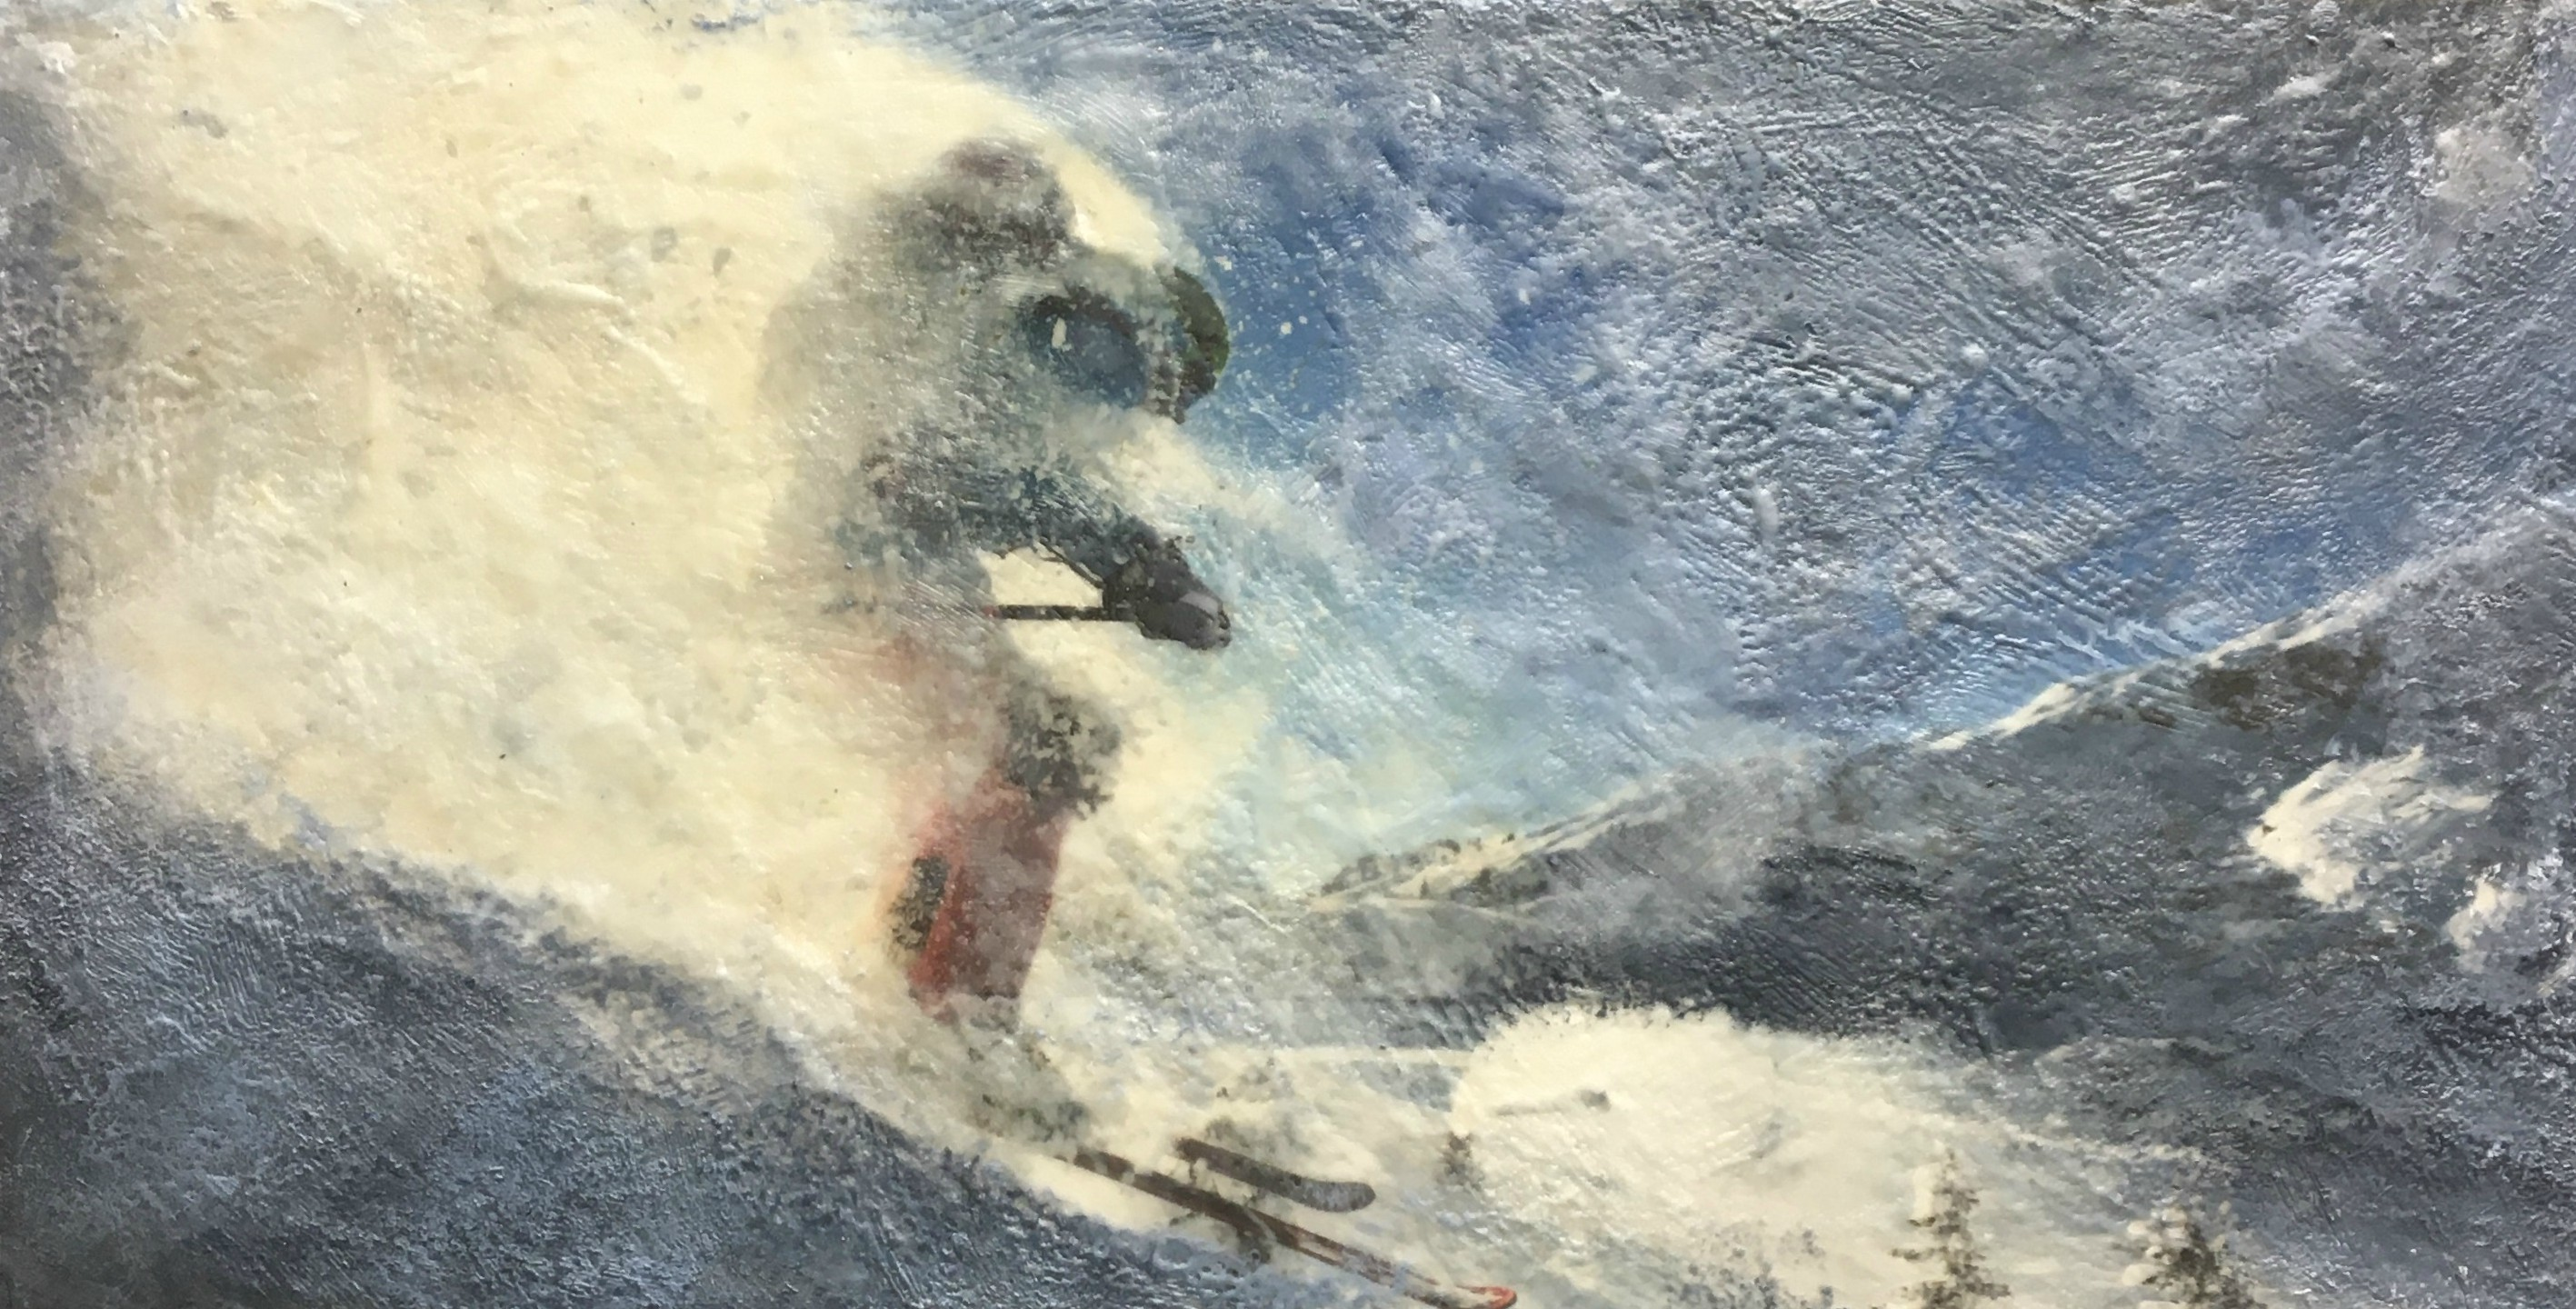 Deep Powder, encaustic ski painting by Lee Anne LaForge | Effusion Art Gallery + Cast Glass Studio, Invermere BC